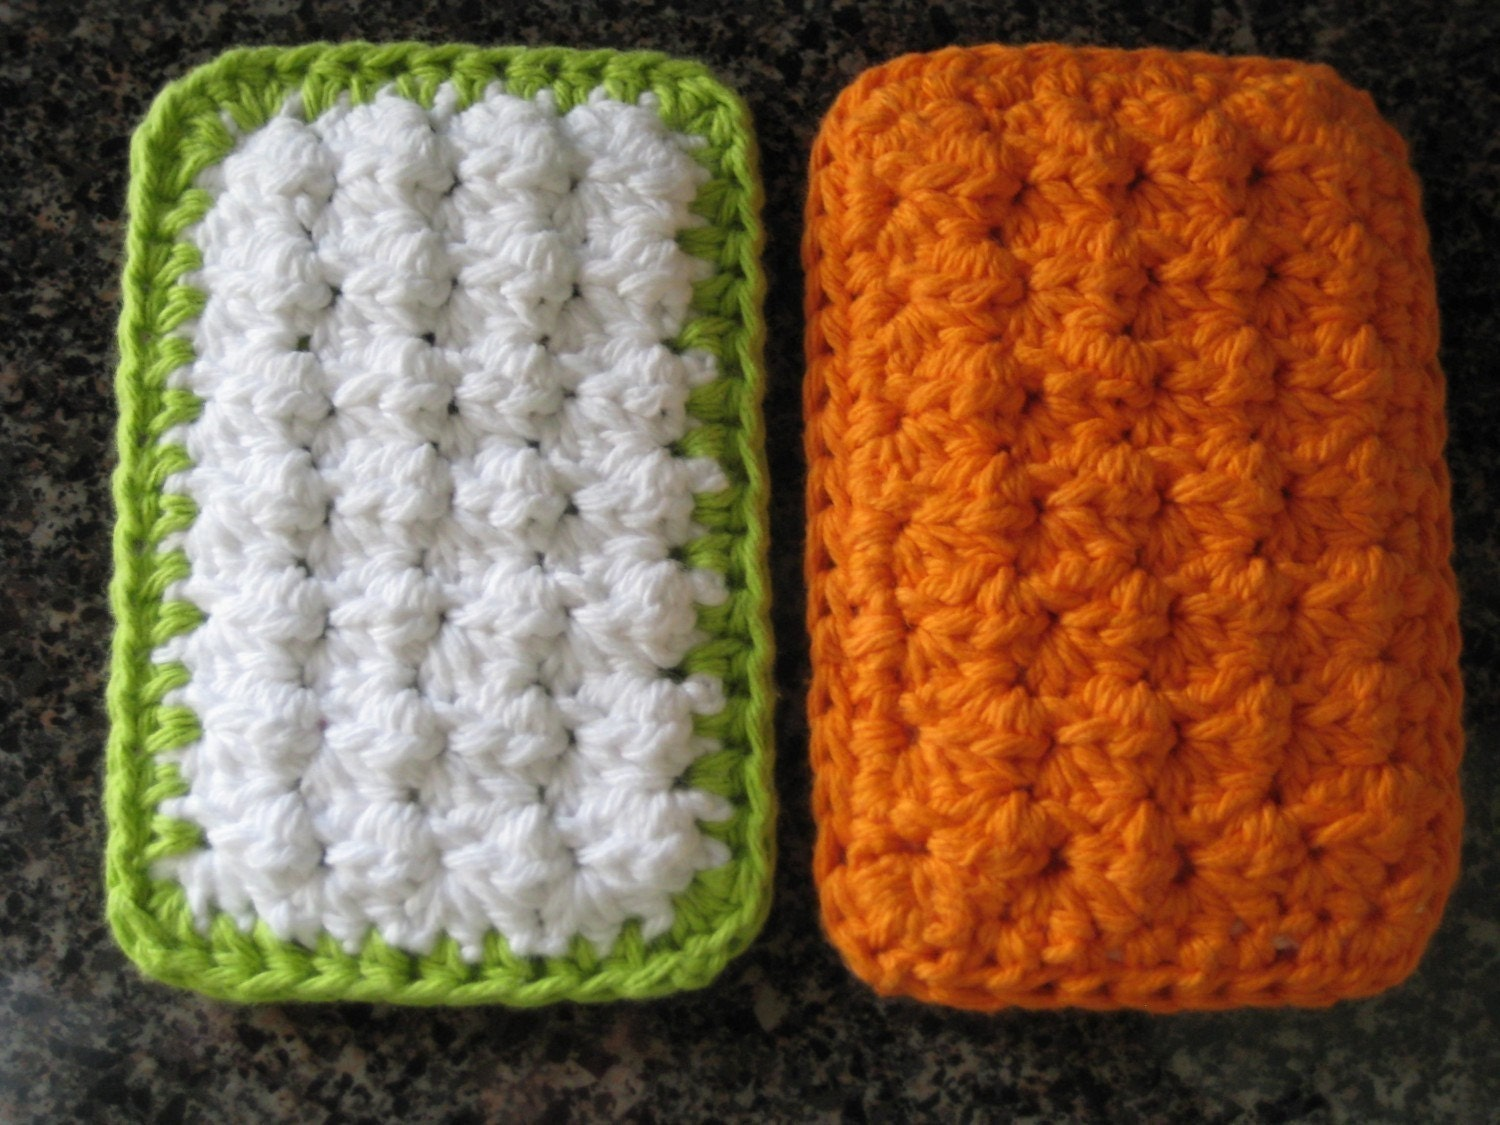 Crochet Patterns Scrubbies : PATTERN Cotton Crochet Cloth Sponge Scrubbies PATTERN by buyhand